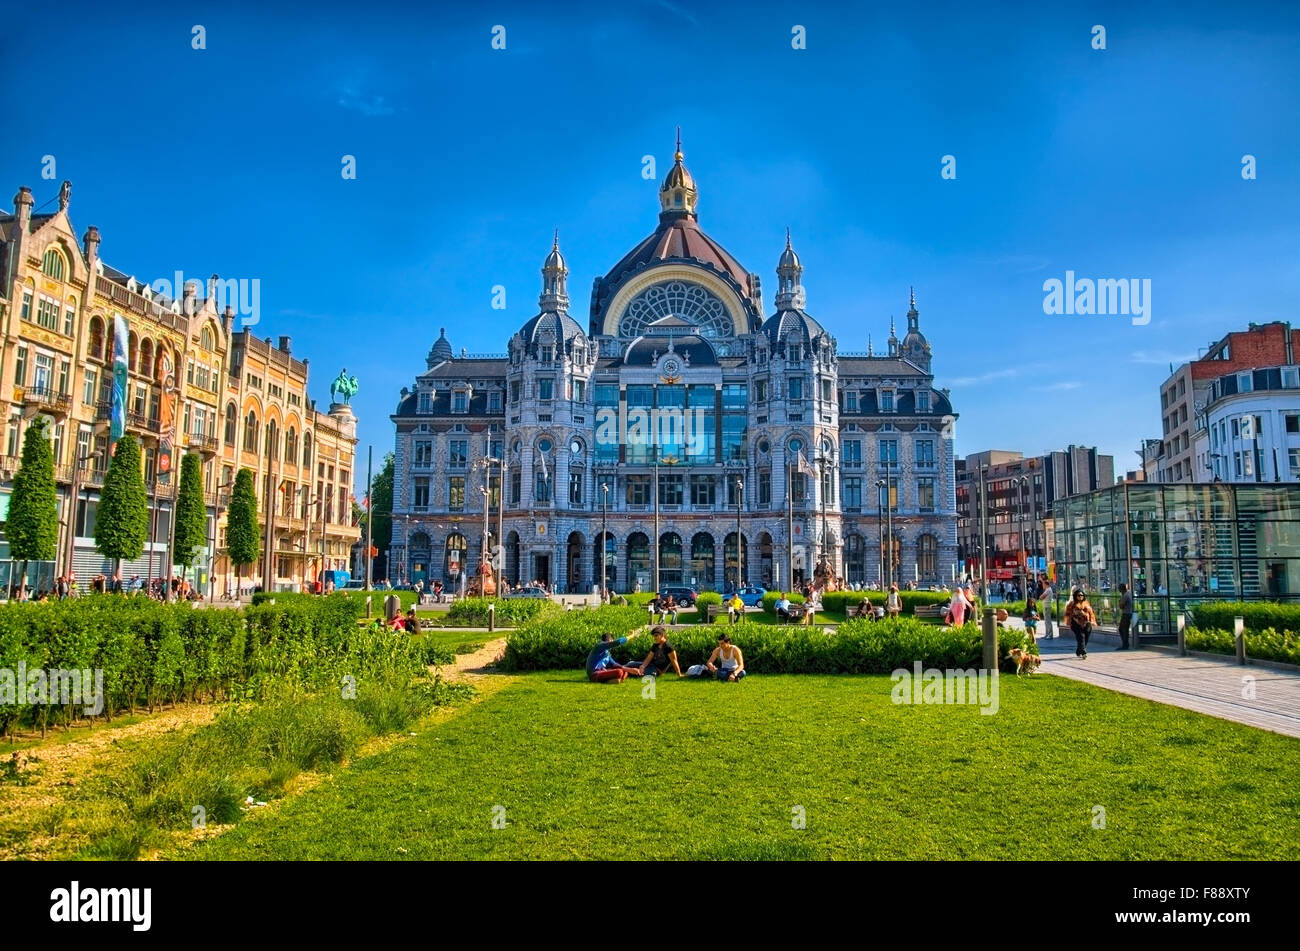 Central station of Antwerp, Belgium, Benelux, HDR - Stock Image